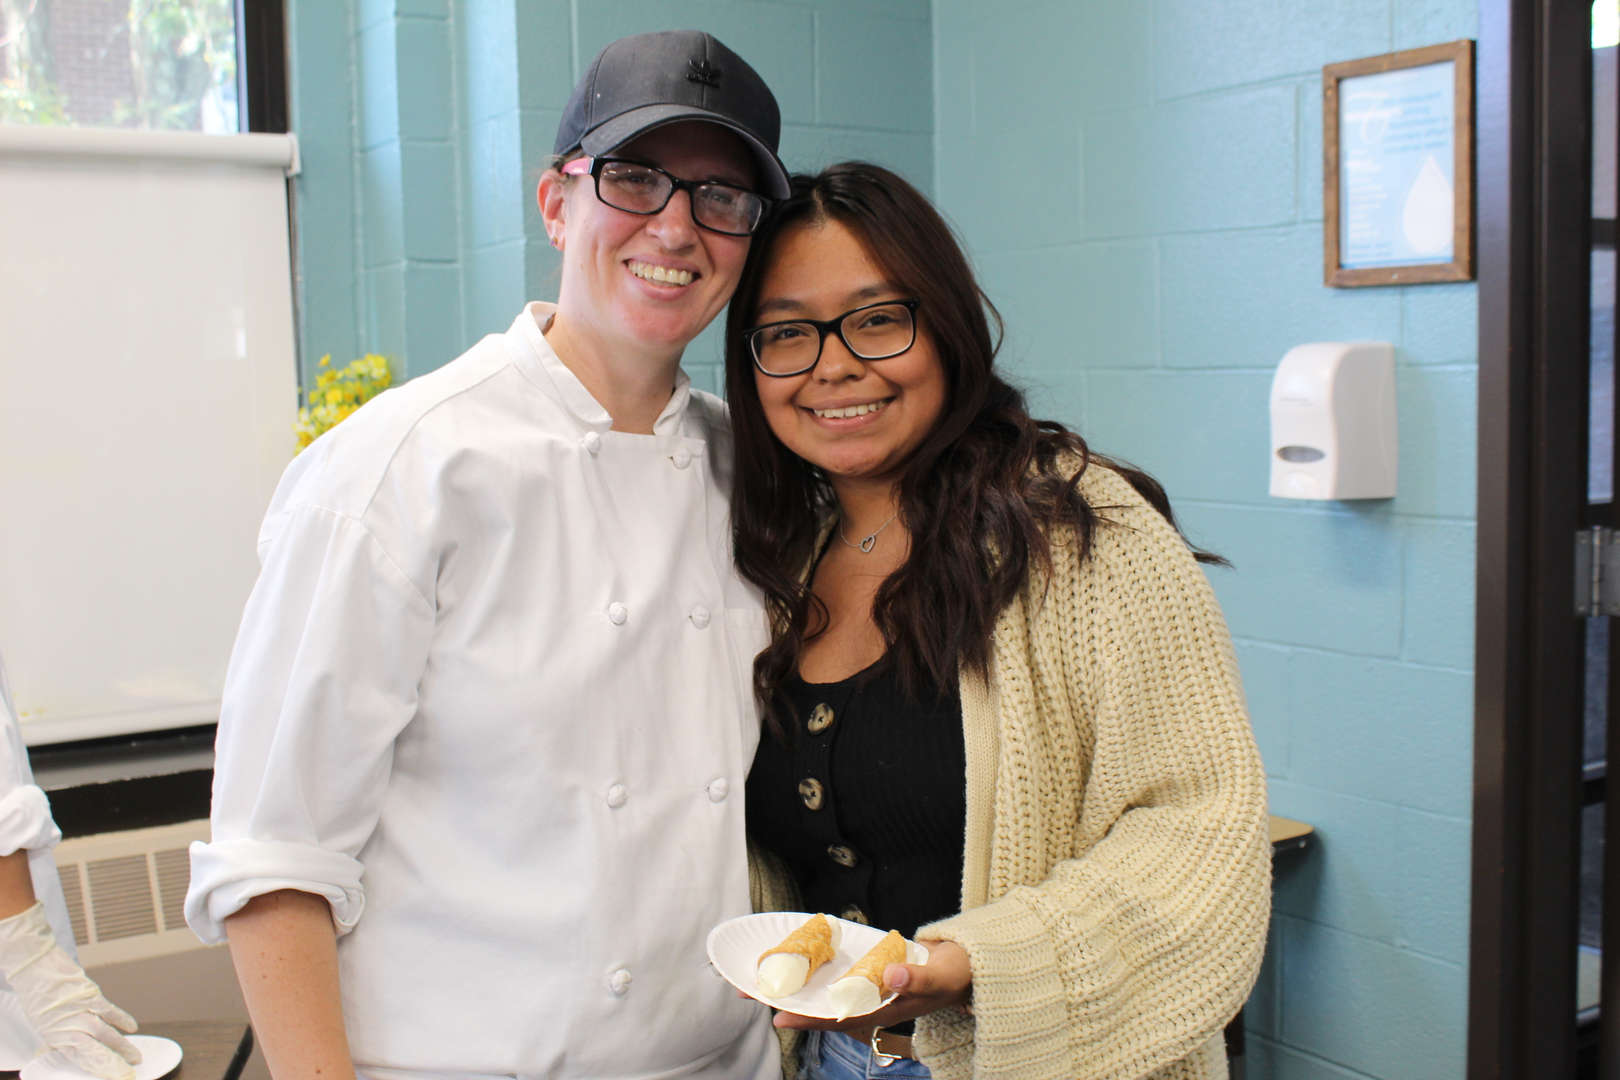 Chef with student